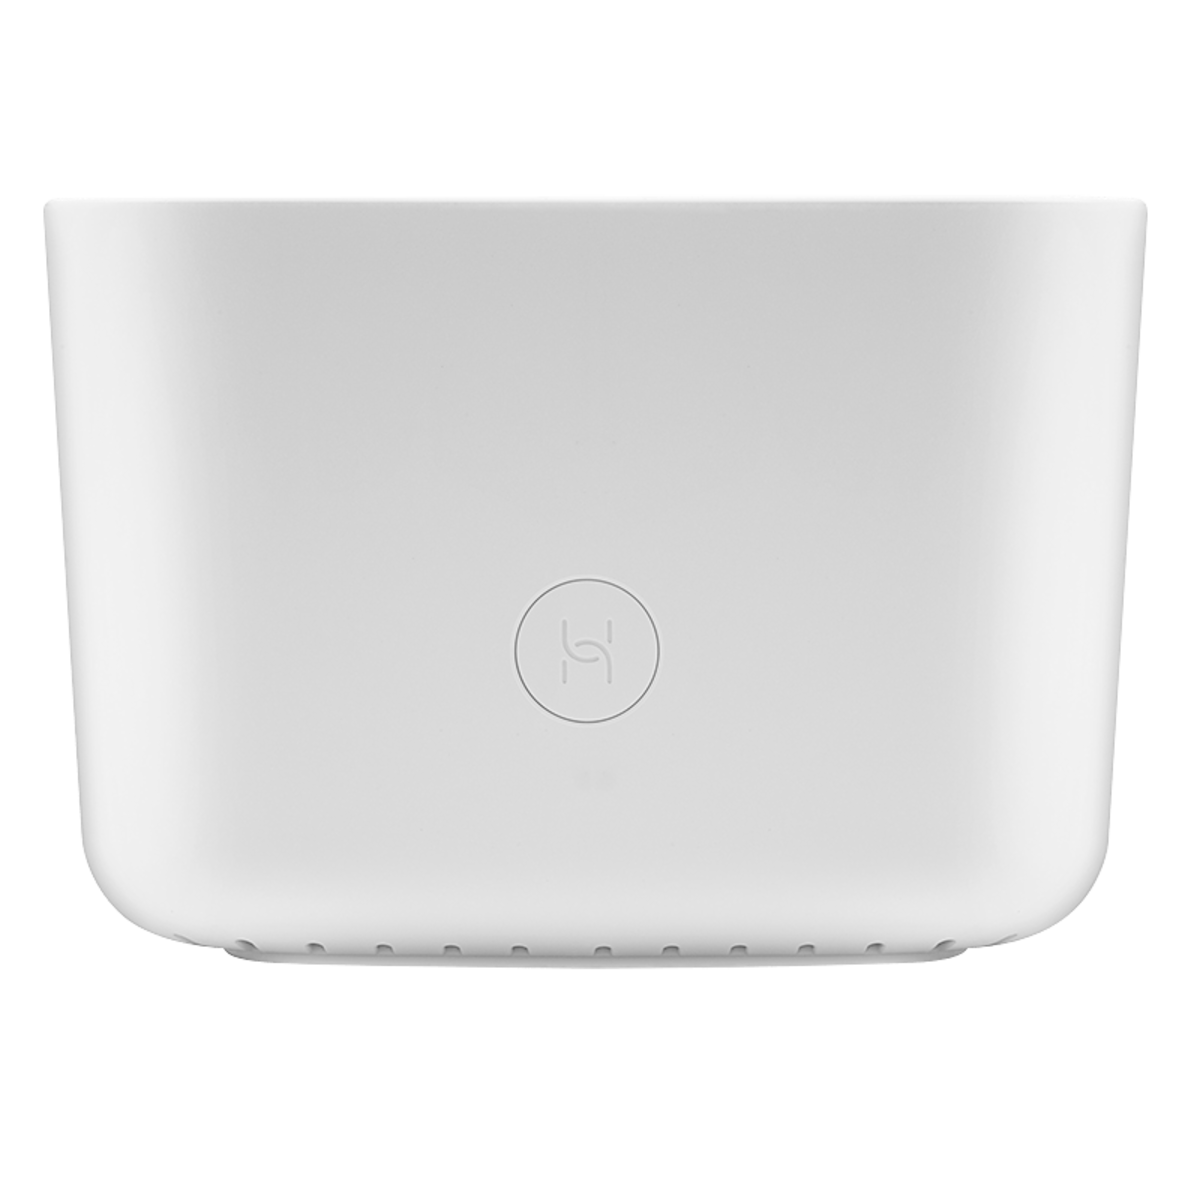 Huawei Honor Router X2 (1 year warranty)